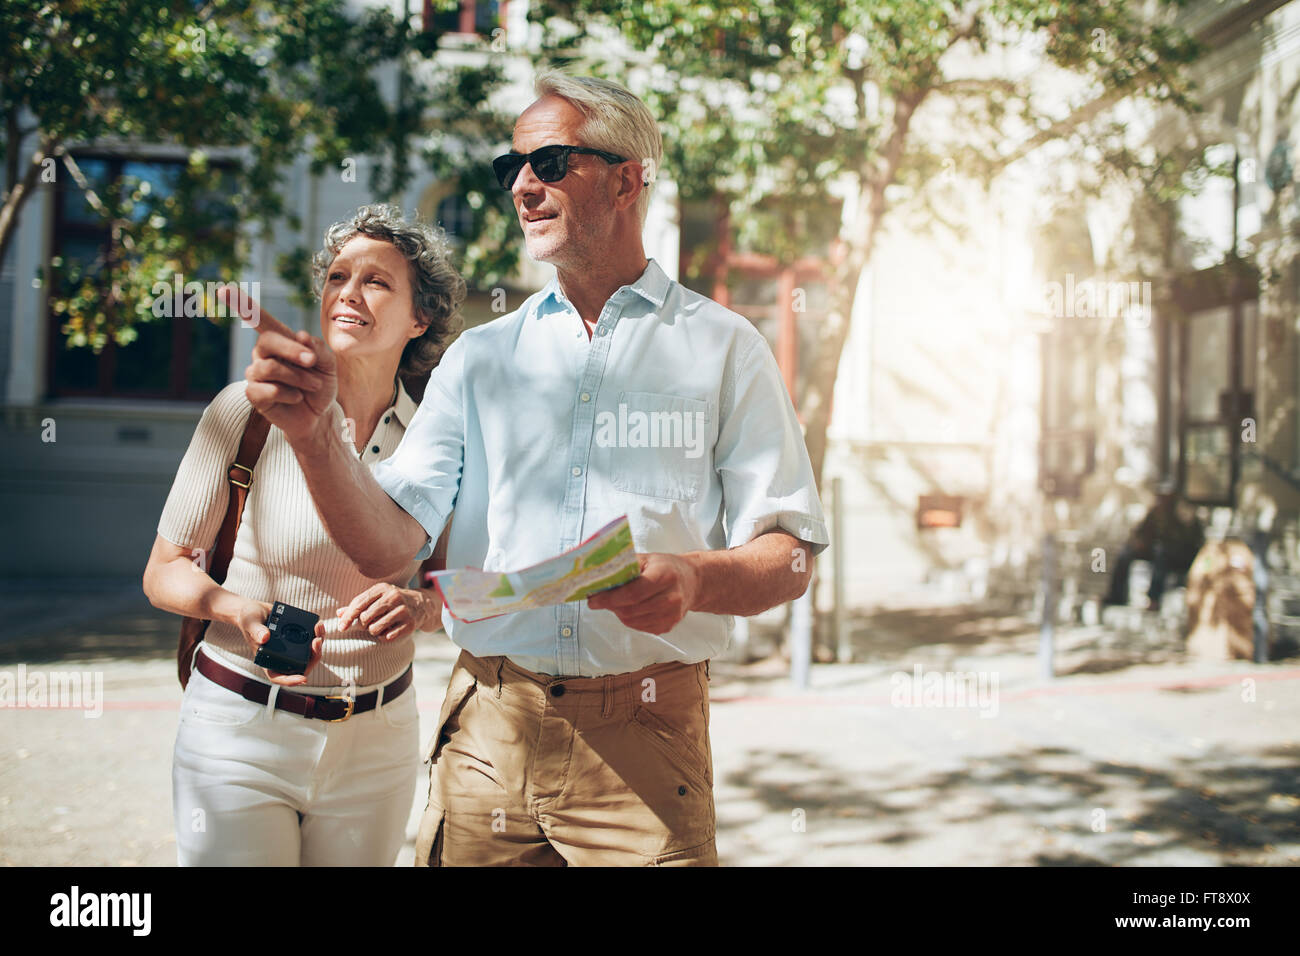 Mature couple tourist exploring a foreign city. Senior couple using map and looking for the direction. - Stock Image